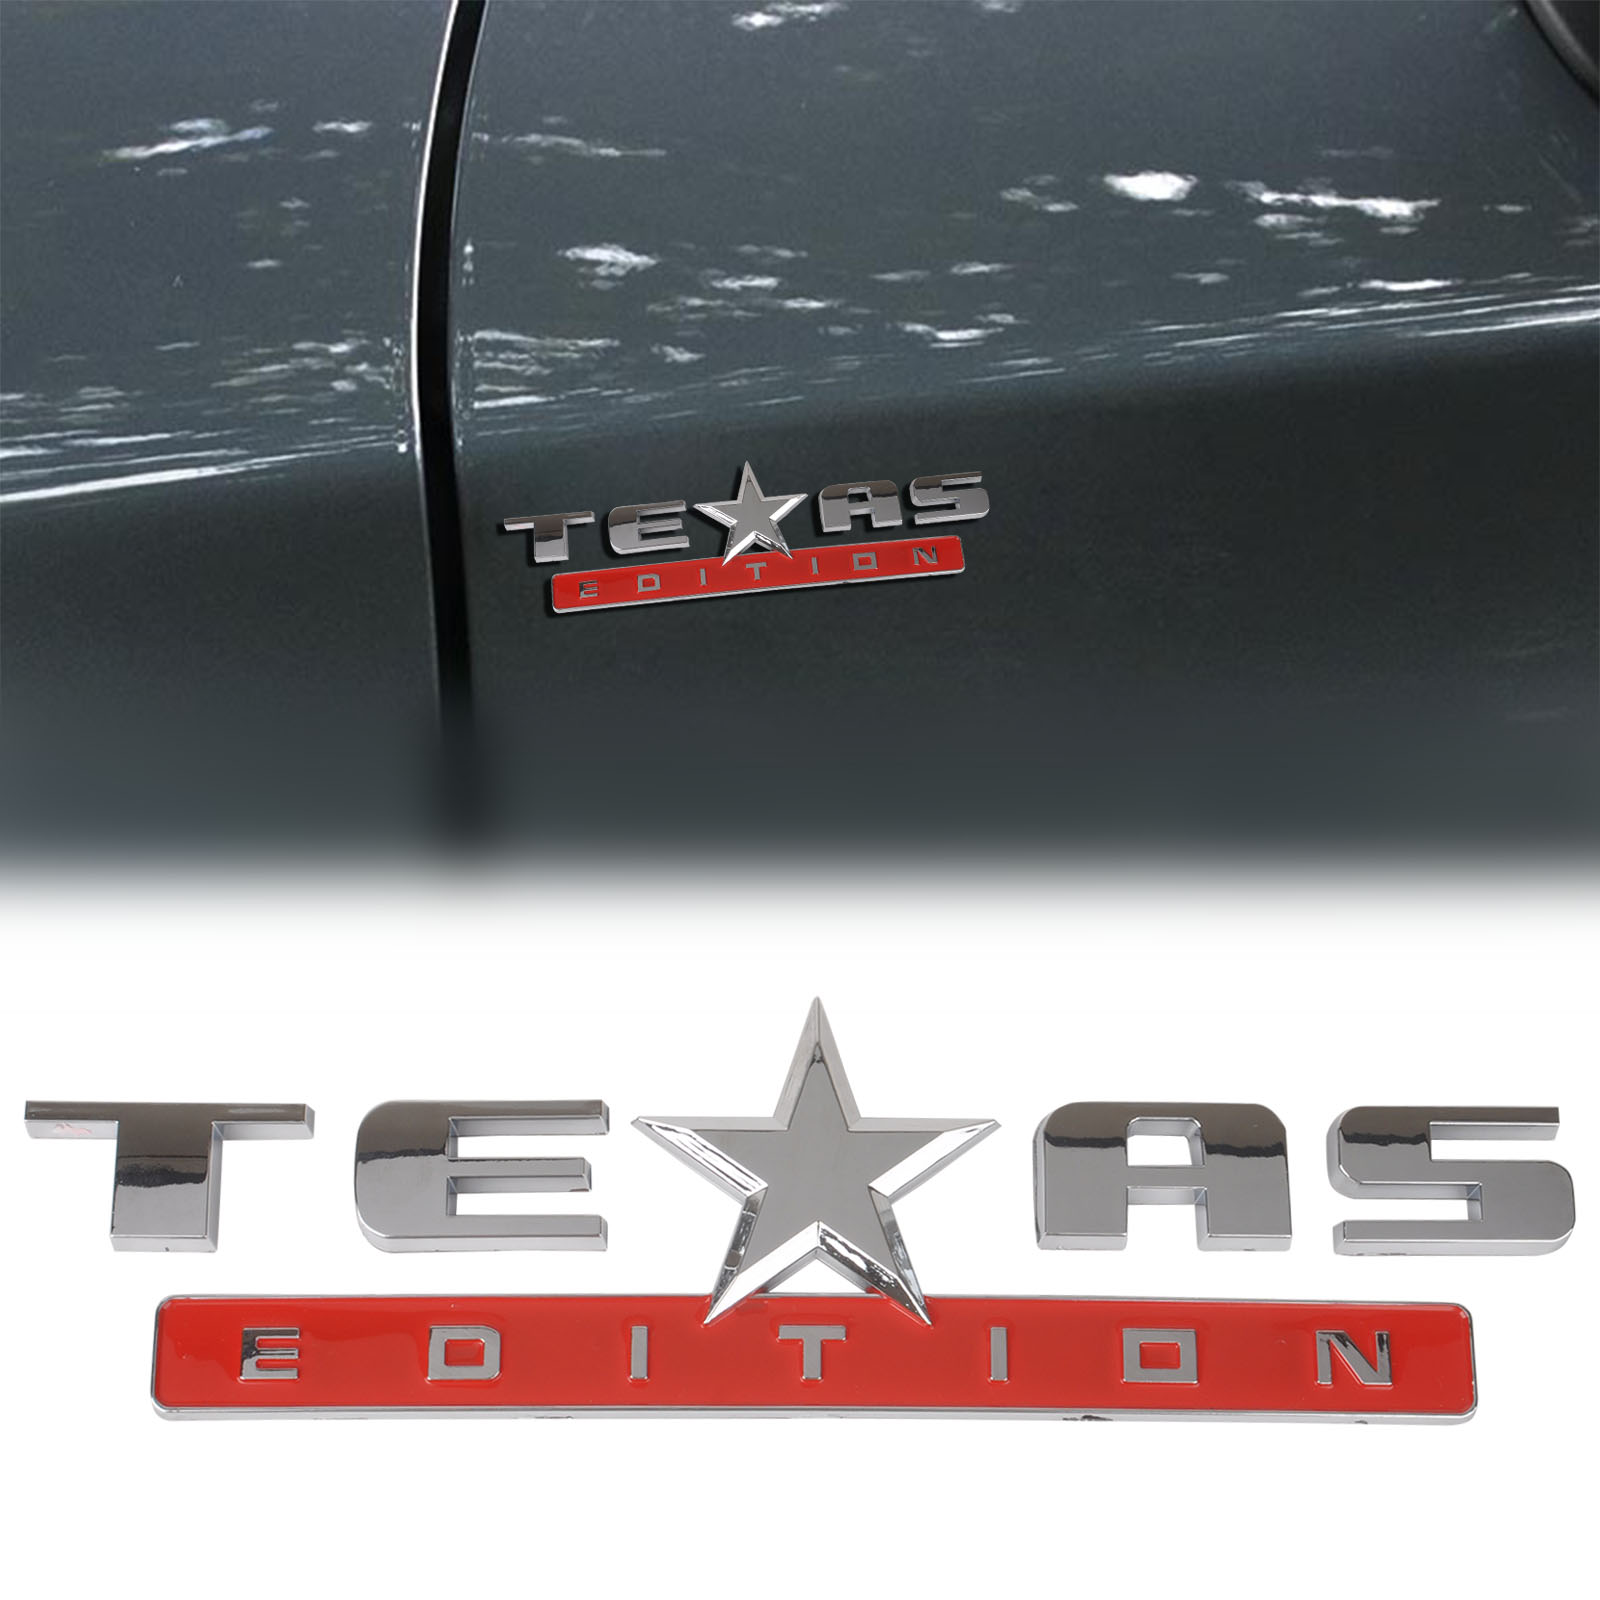 Mayitr high quality abs texas edition car emblem badge sticker decal for chevrolet chevy silver red